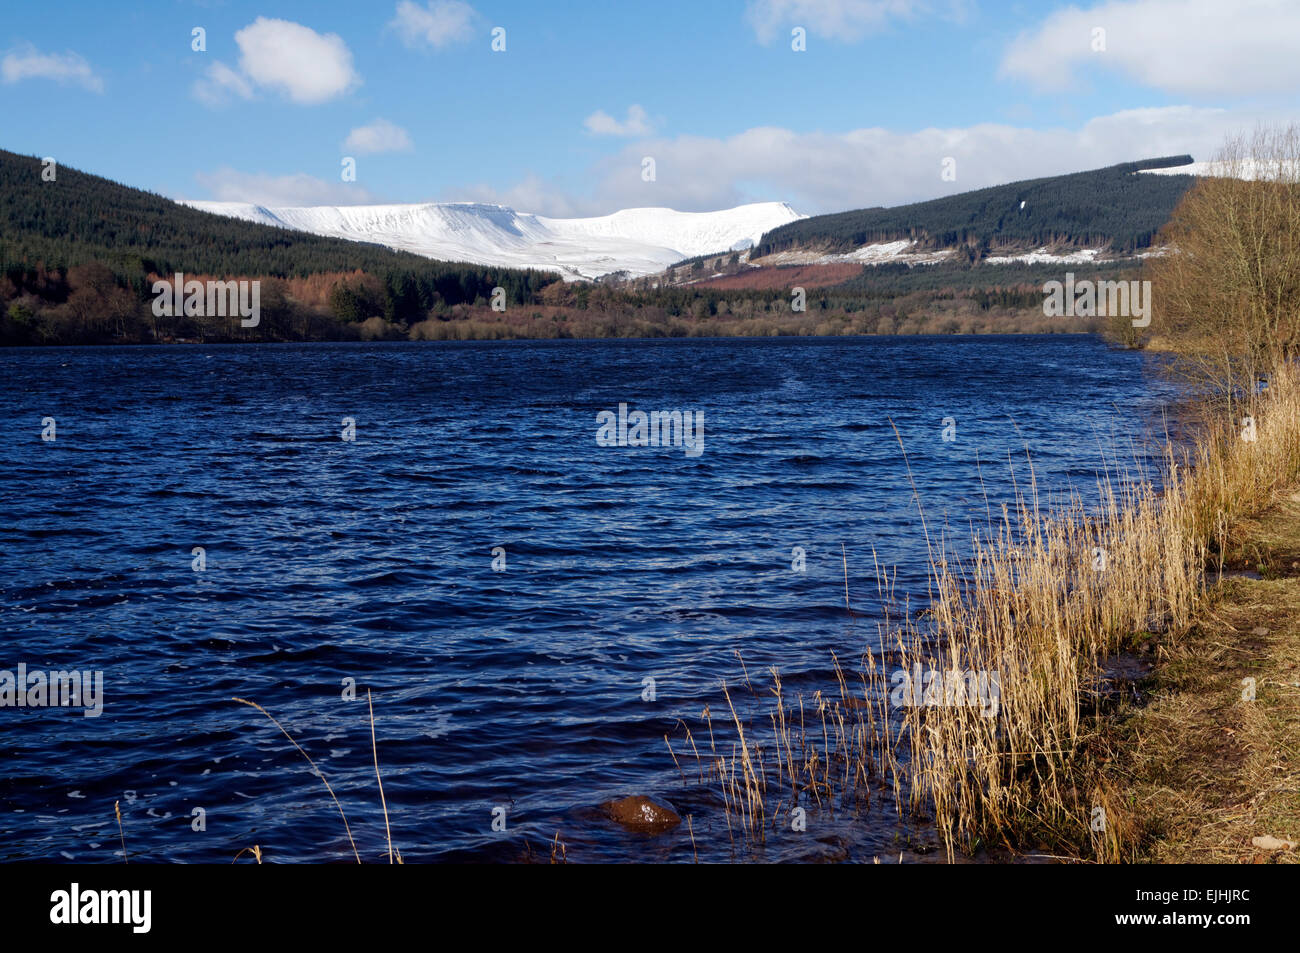 Pentwyn Reservoir and the Brecon Beacons, Brecon Beacons National Park, Powys, Wales, UK. Stock Photo